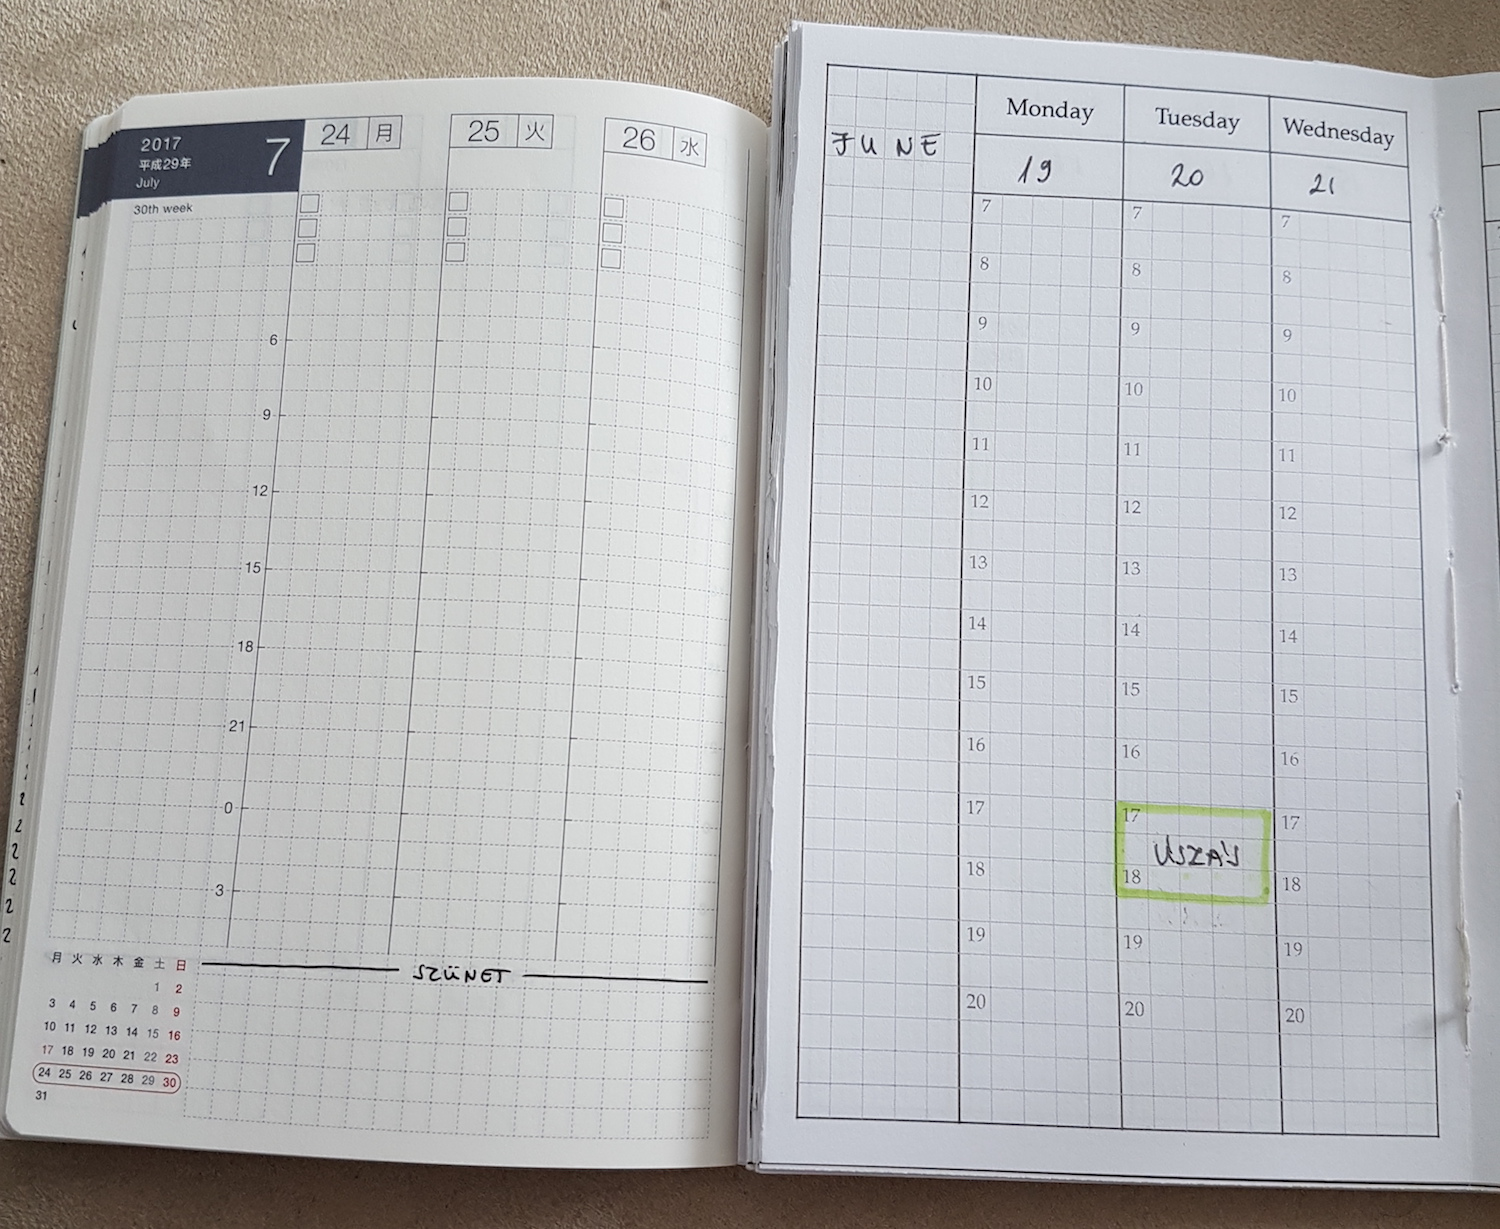 As you can see, I created a similar booklet before I discovered the Hobonichi one.